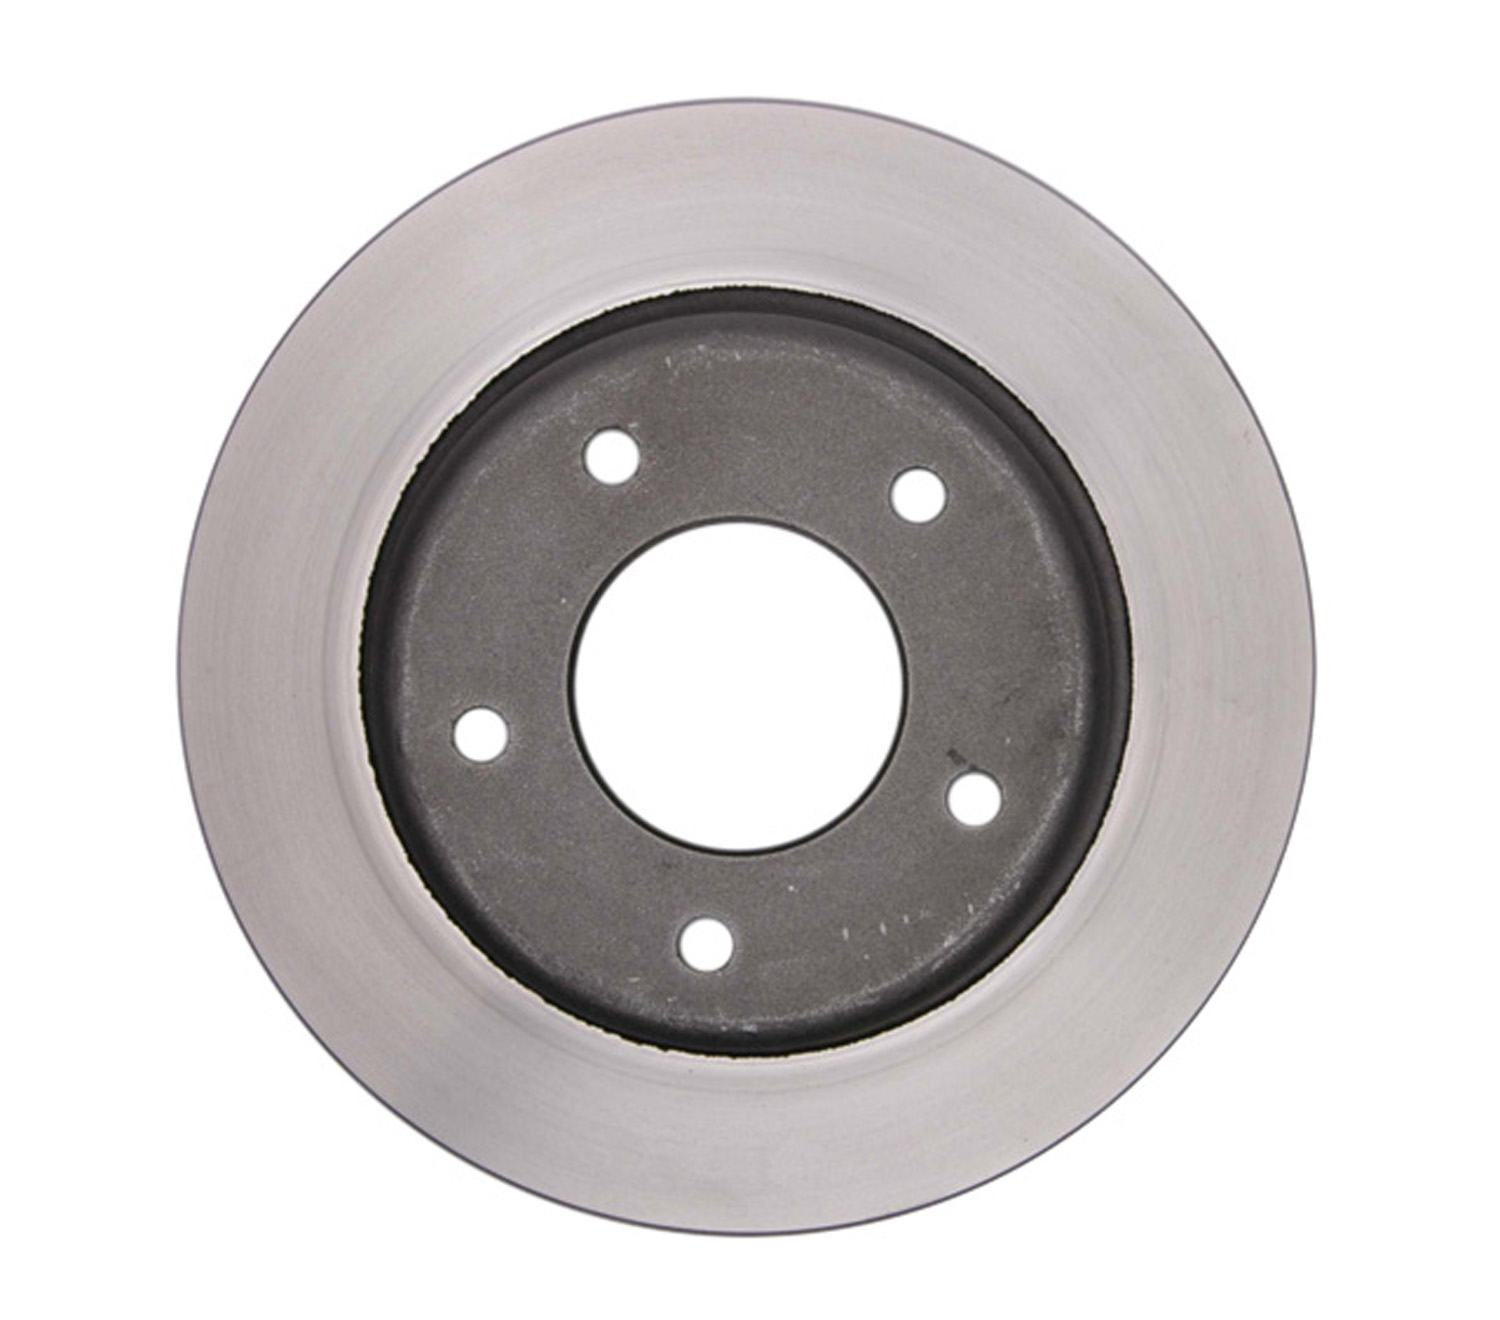 ACDELCO PROFESSIONAL BRAKES - Disc Brake Rotor (Front) - ADU 18A403